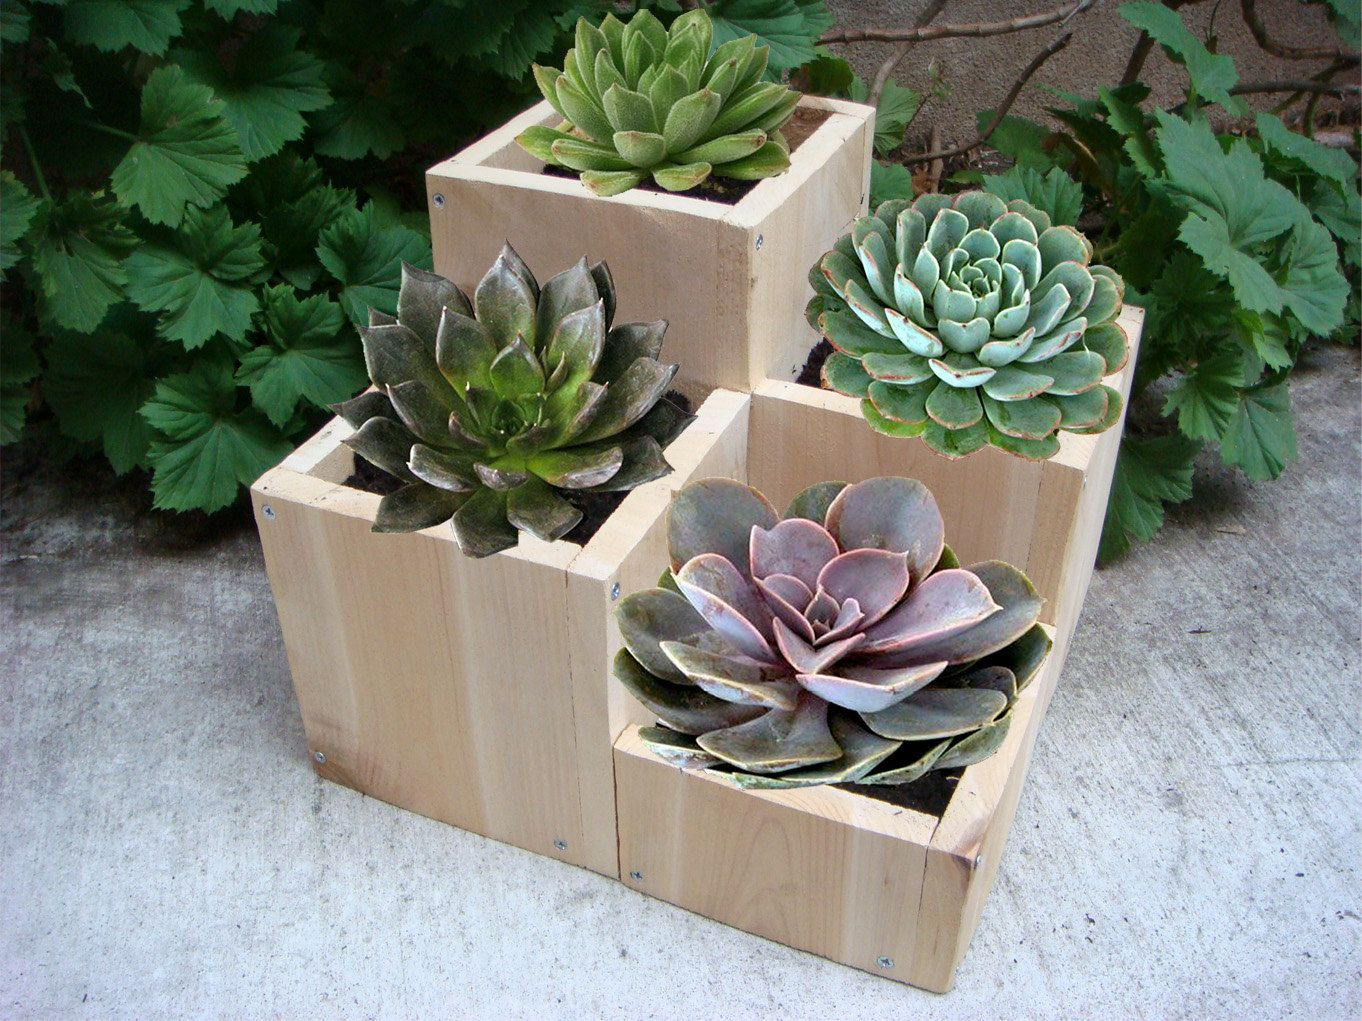 Flower Planter Garden Pot Wood Mother S Day Gift Tabletop Size 4 Compartments For Various Plants And Flowers Jewel 49 00 Via Etsy